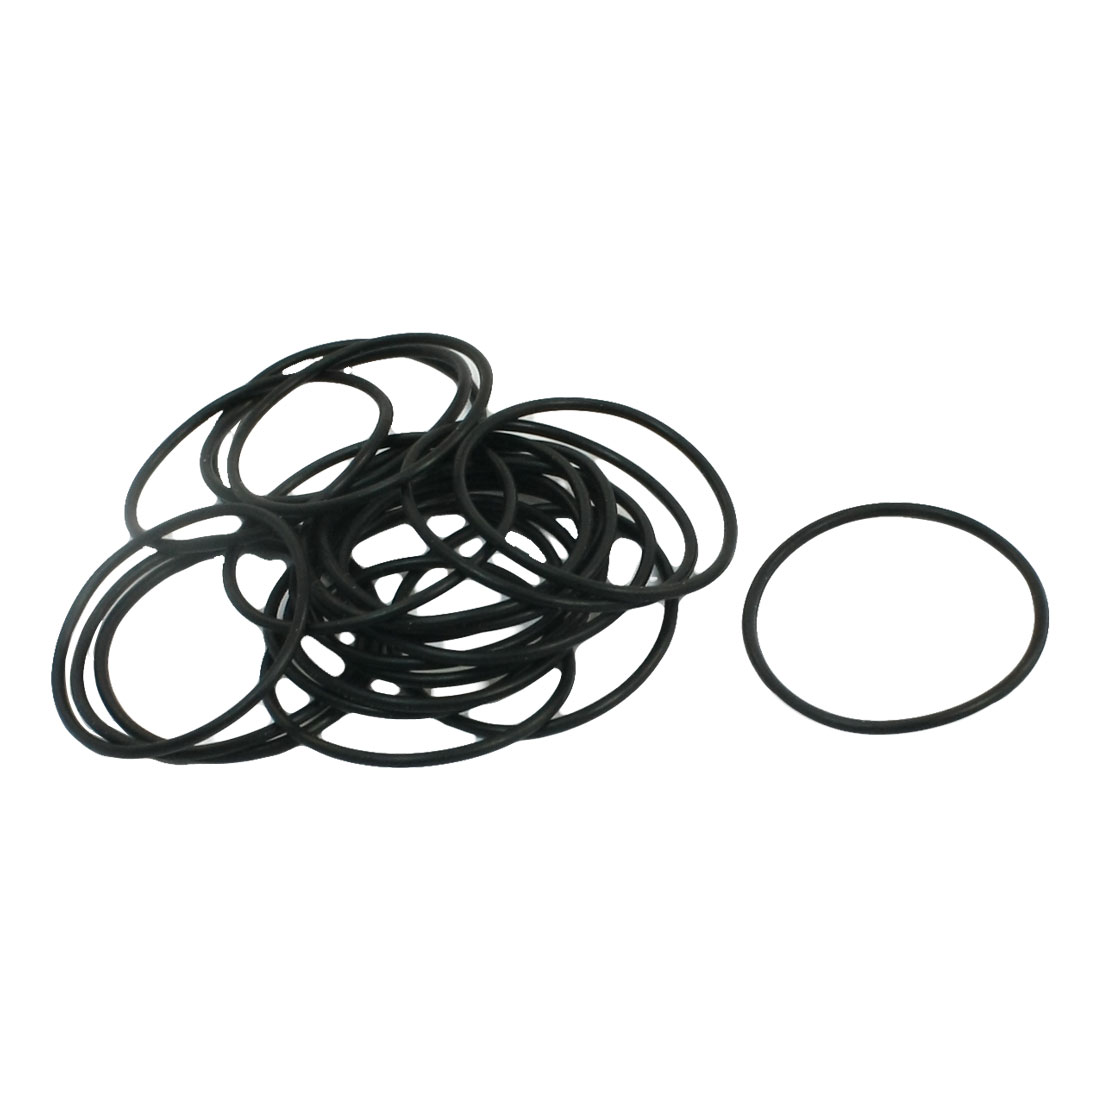 Unique Bargains 10Pairs 22mm x 20mm x 1mm Industrial Rubber Sealing Oil Filter O Rings Gaskets